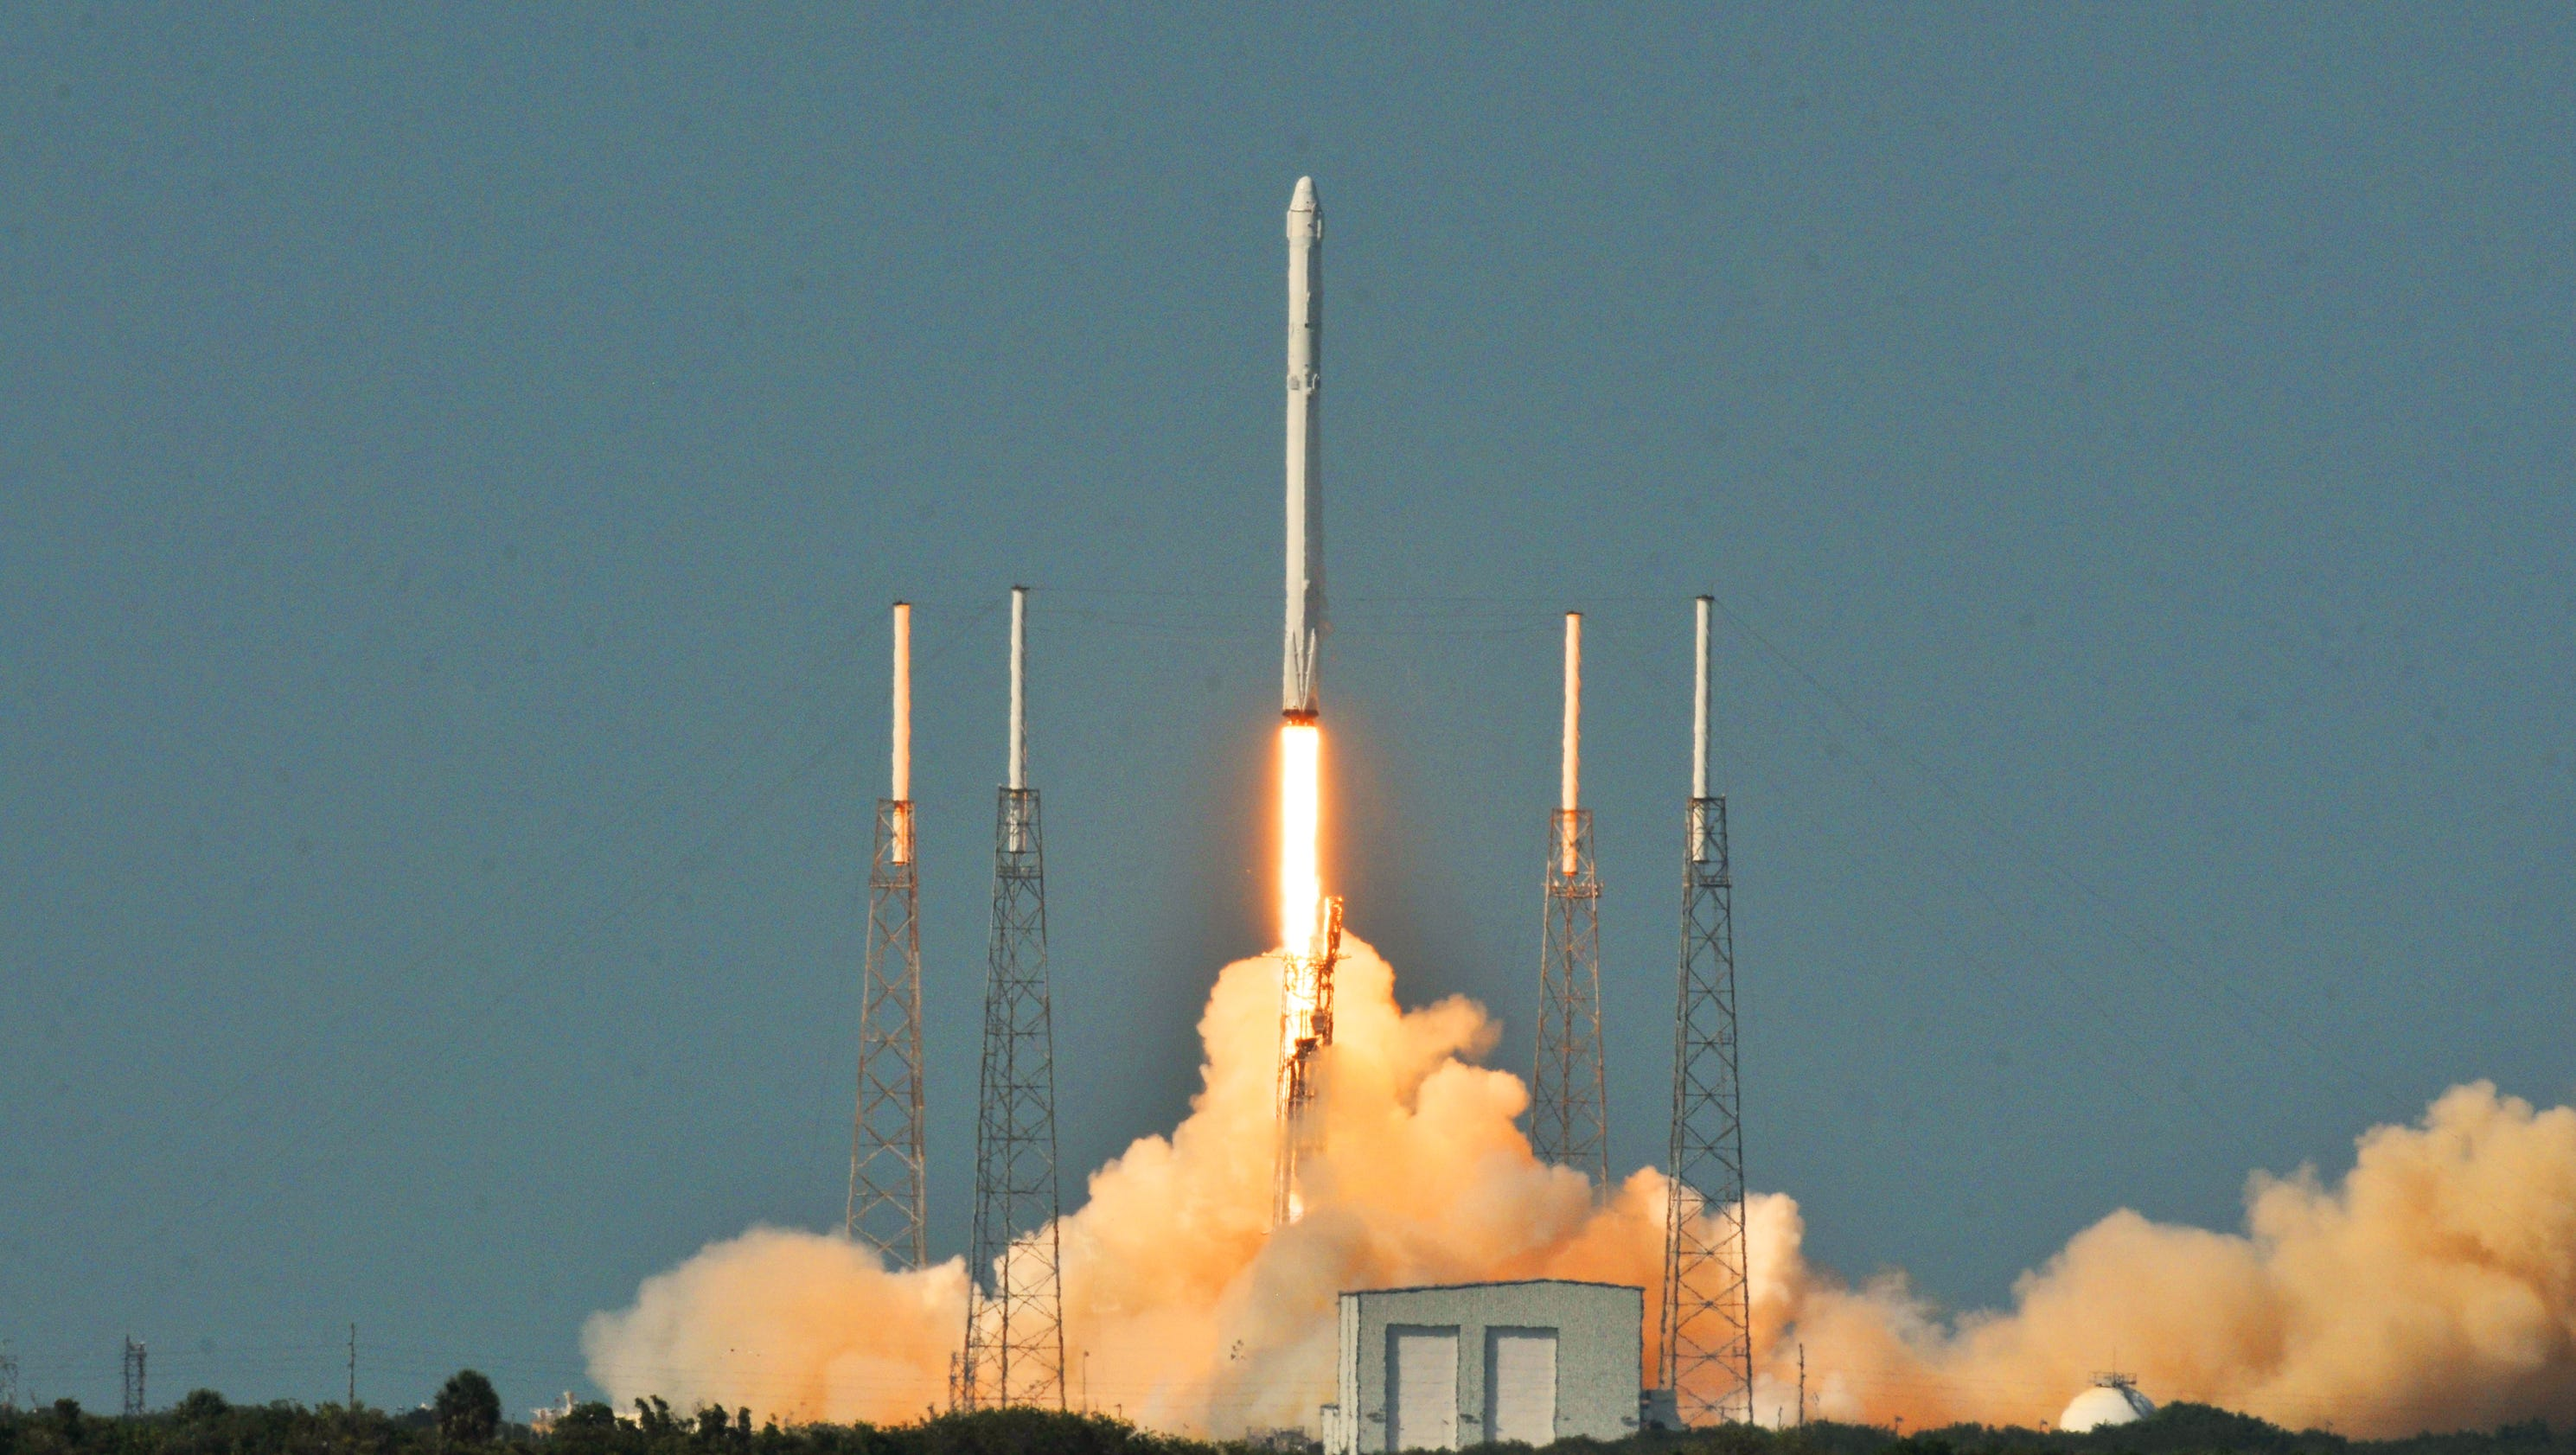 SpaceX targeting early May for Falcon 9 rocket launch